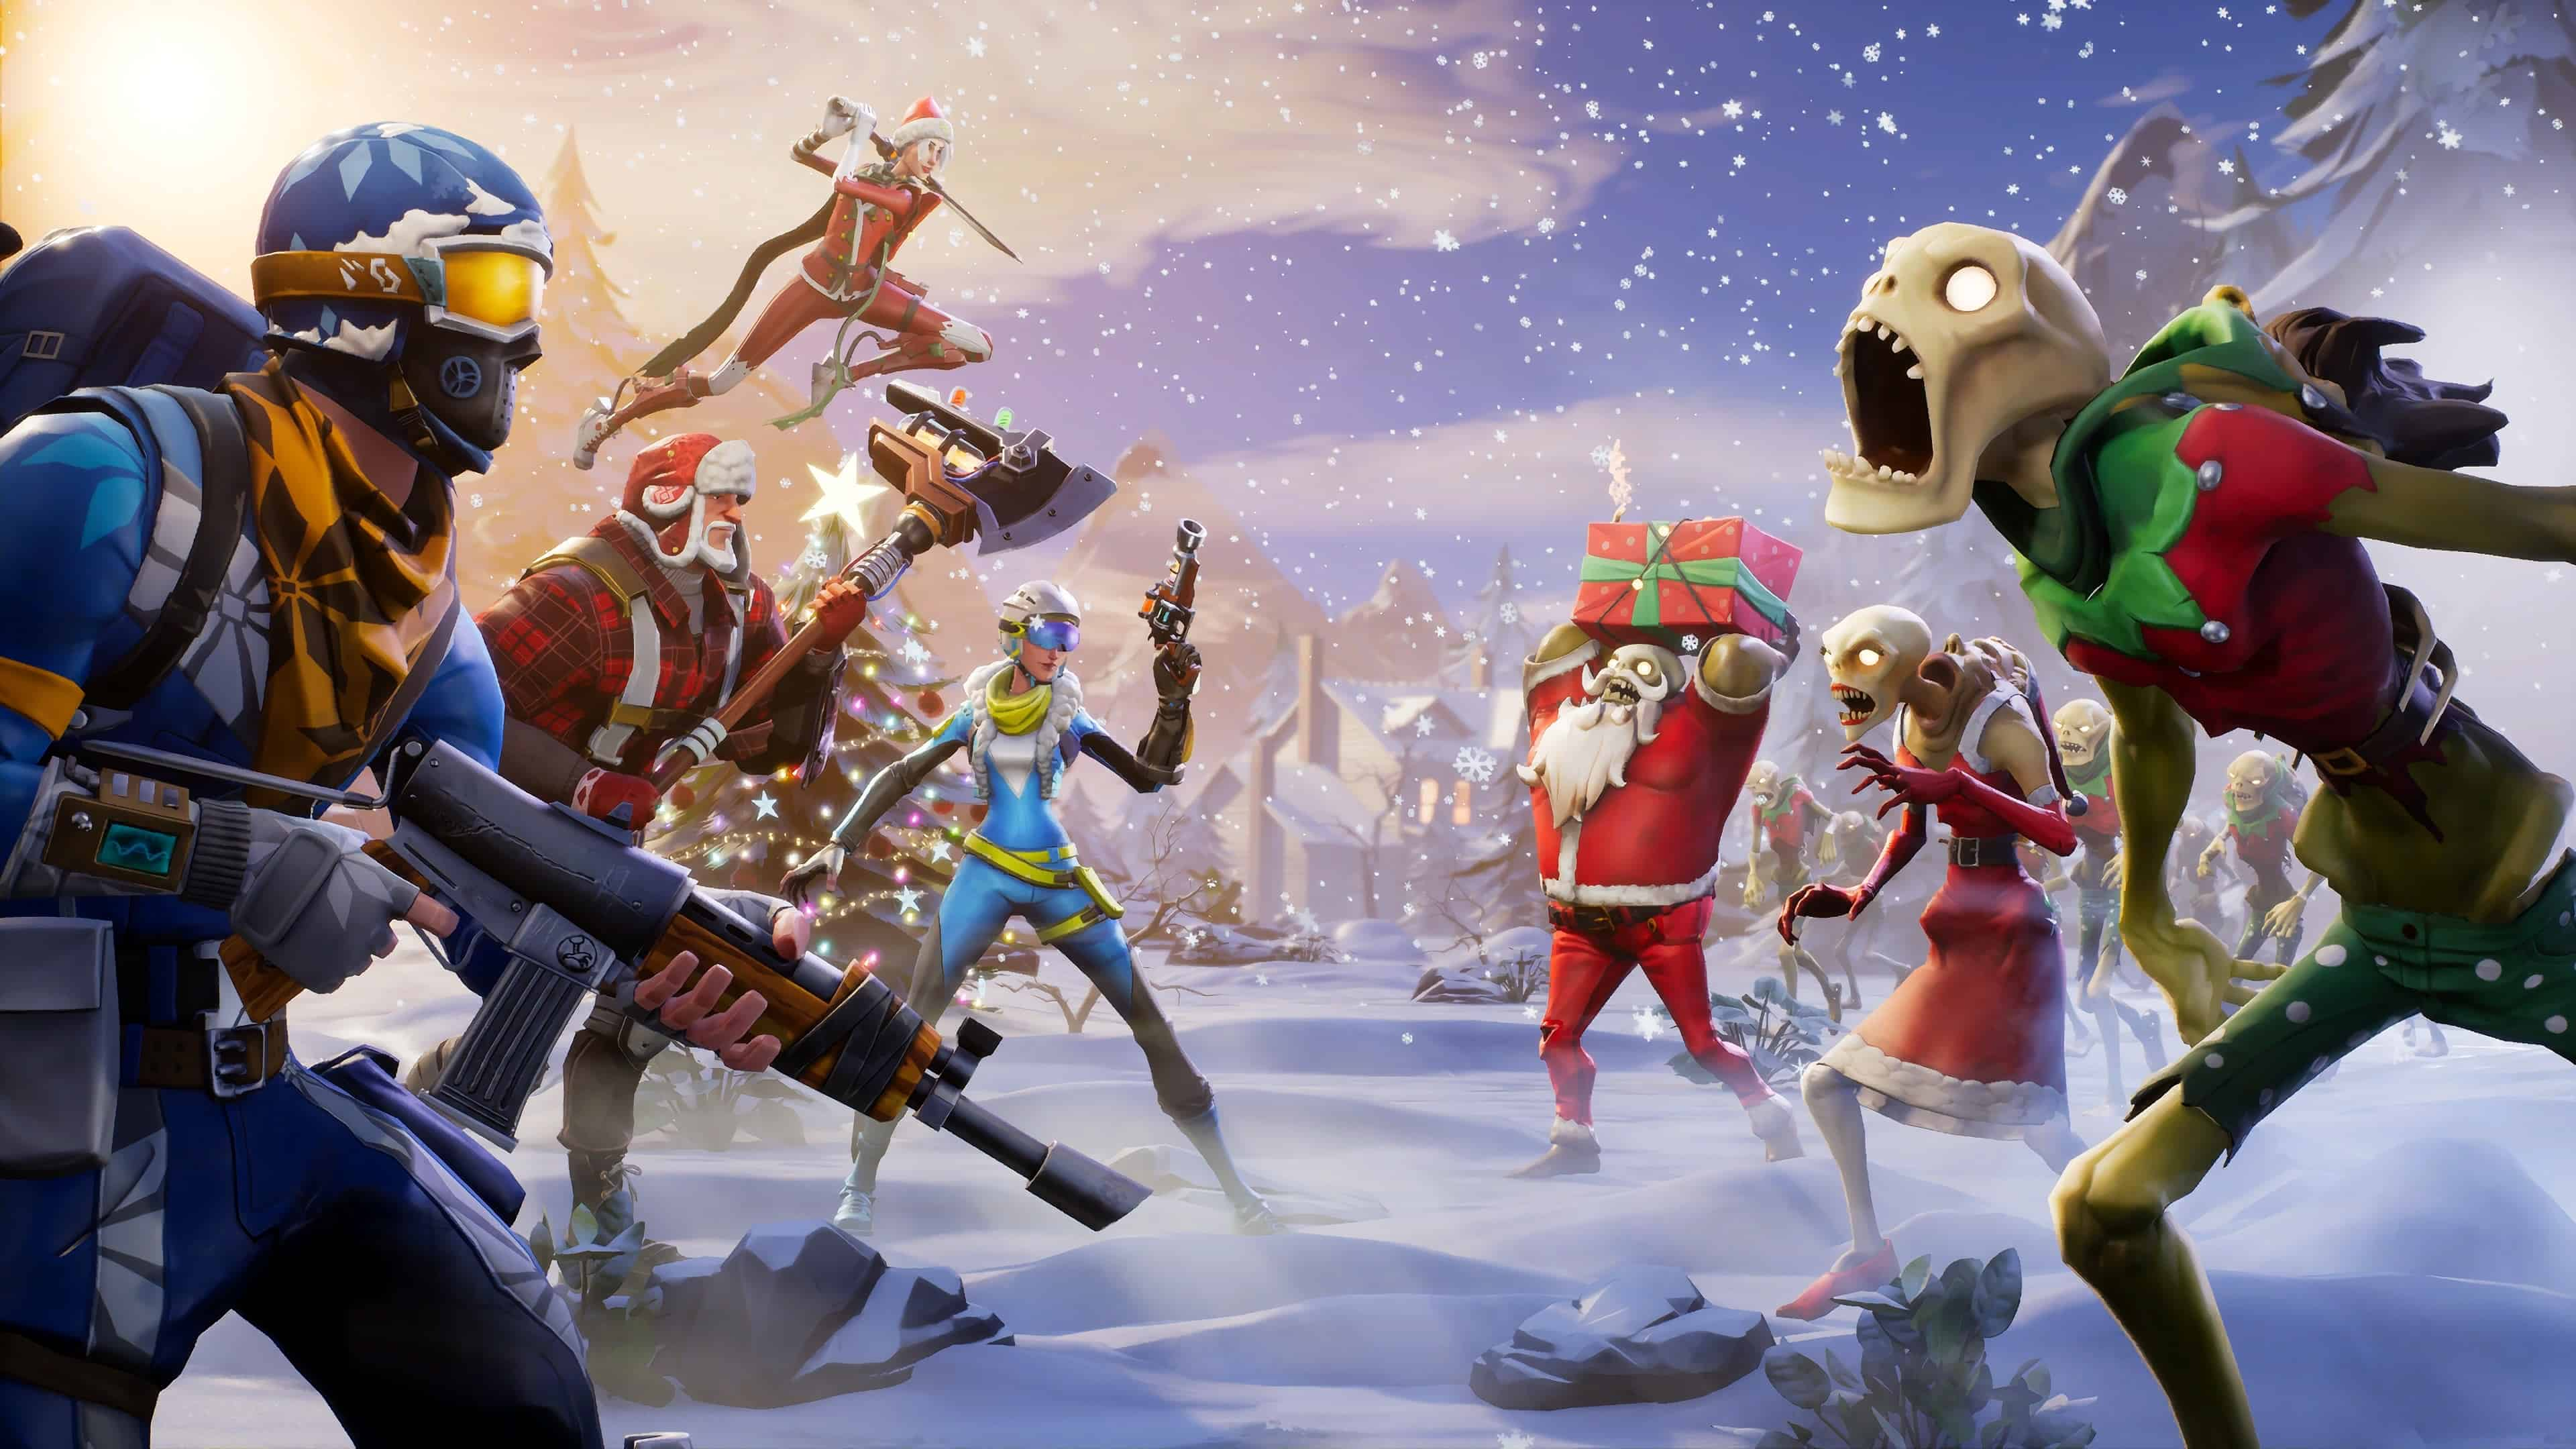 Fortnite winter season uhd 4k wallpaper pixelz - 4k fortnite wallpaper ...